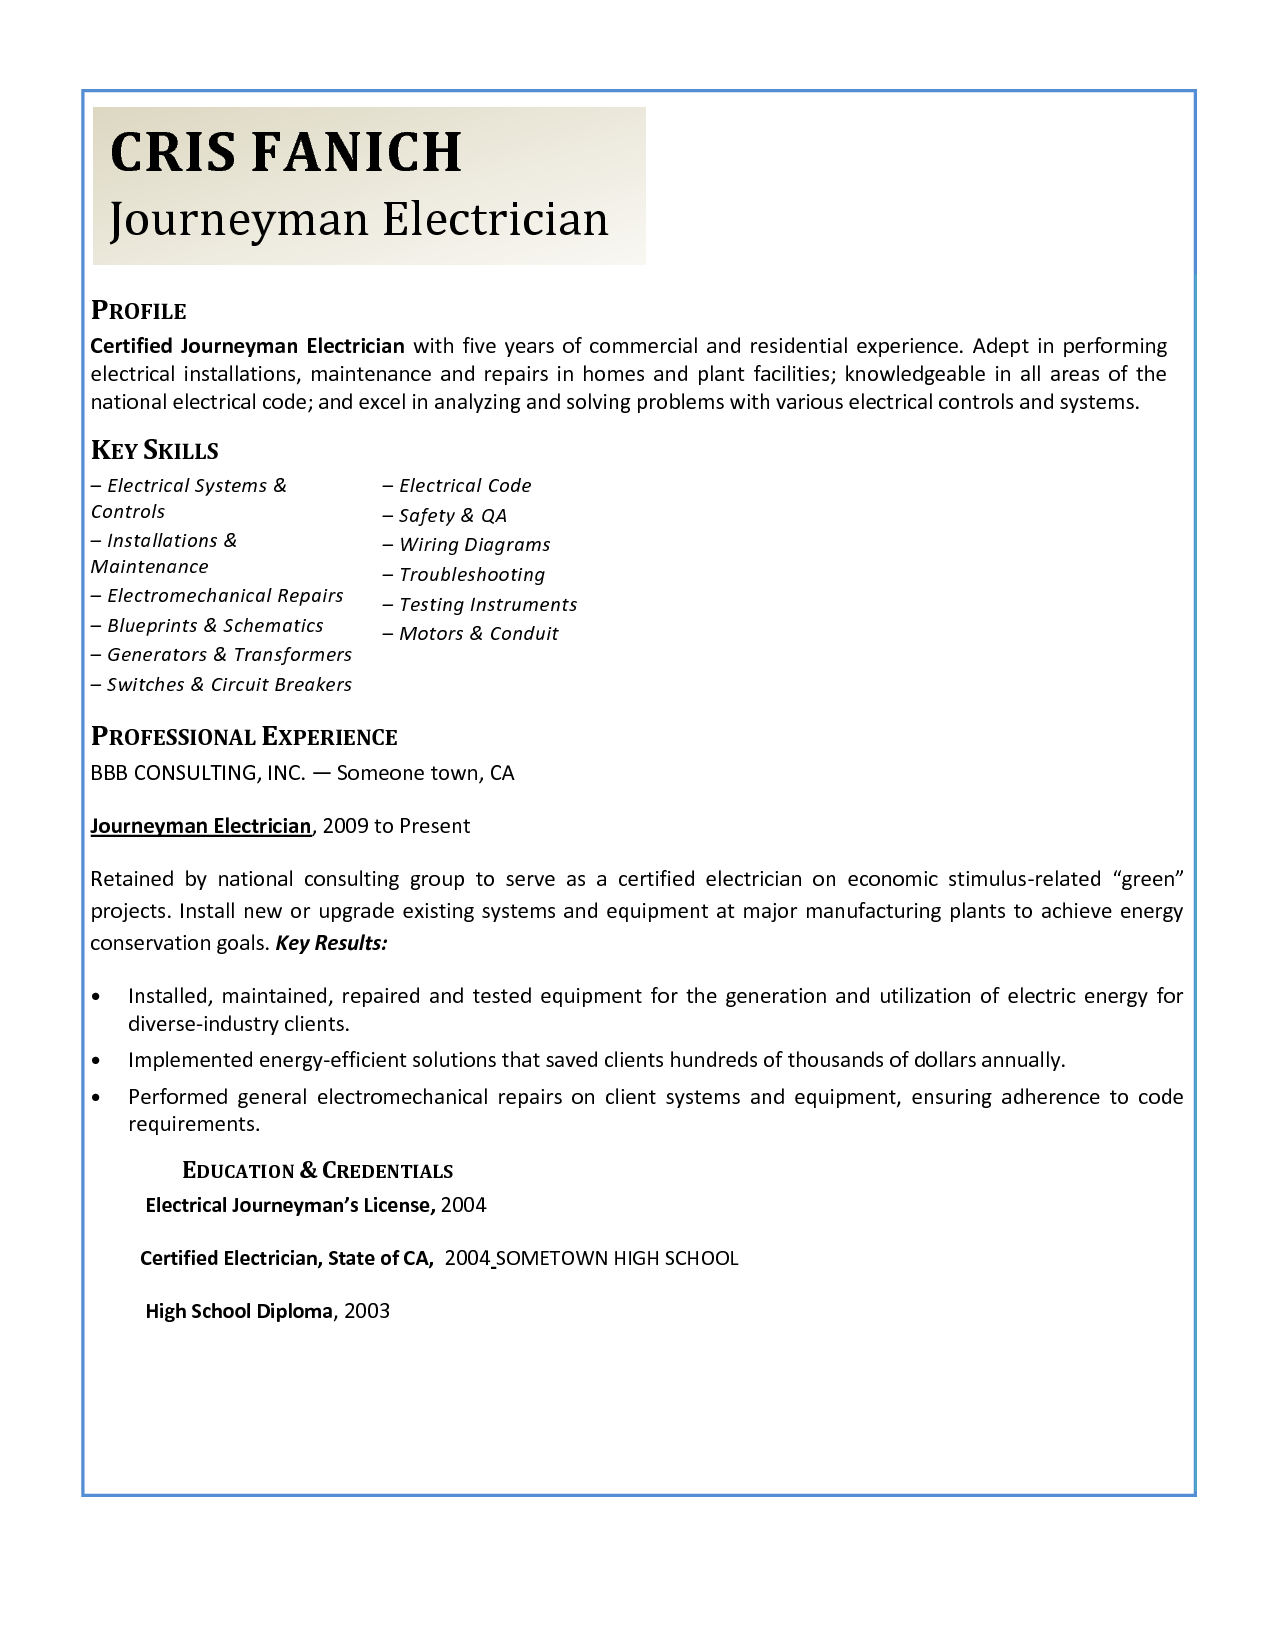 Electrician Resume Electrical Power Distribution Cover Letter Free Engine Journeyman